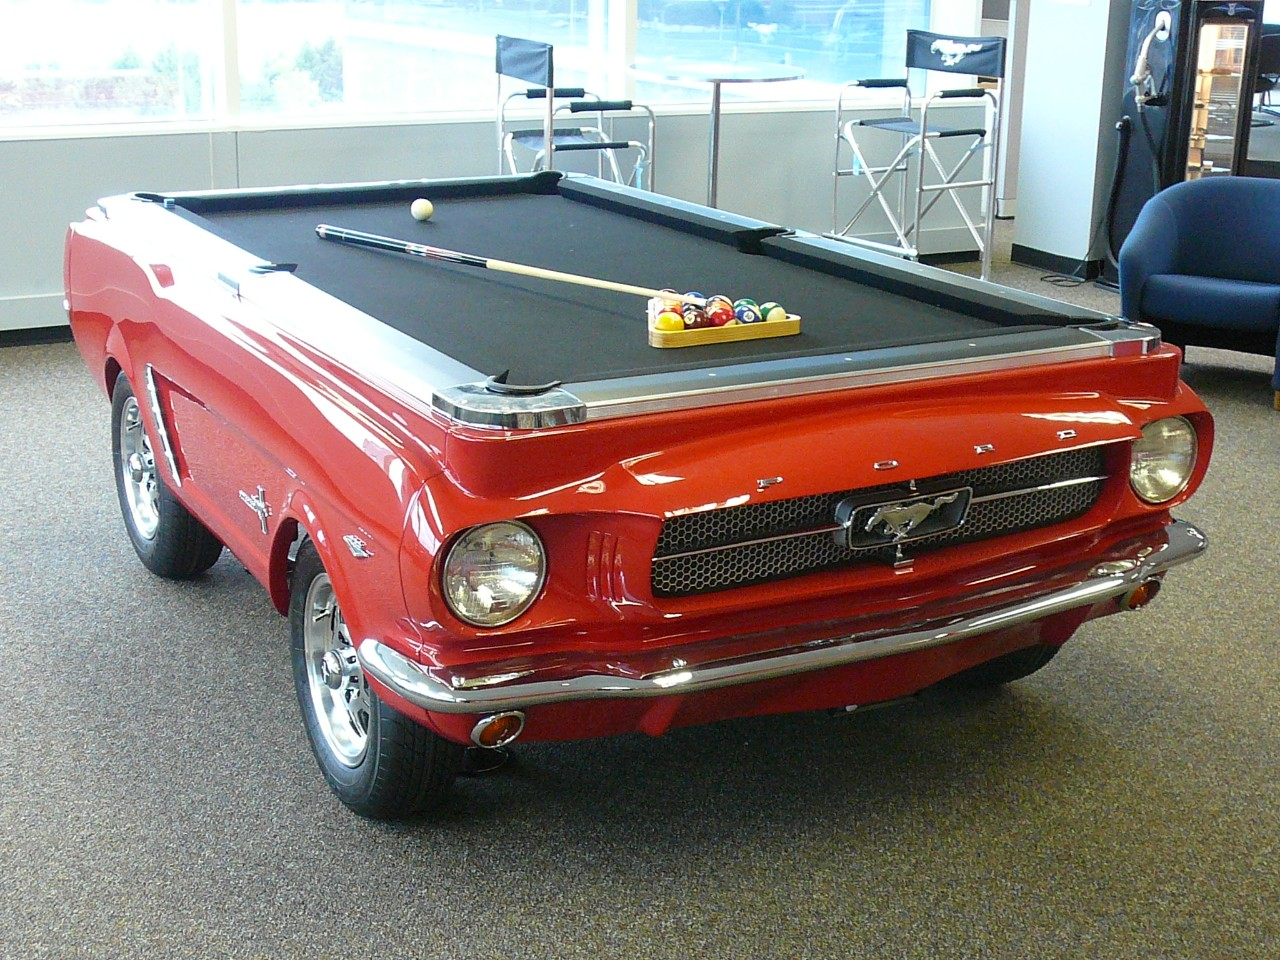 Captivating Interested In Having A 1965 Ford Mustang Pool Table? You Can Get One! Nice Design